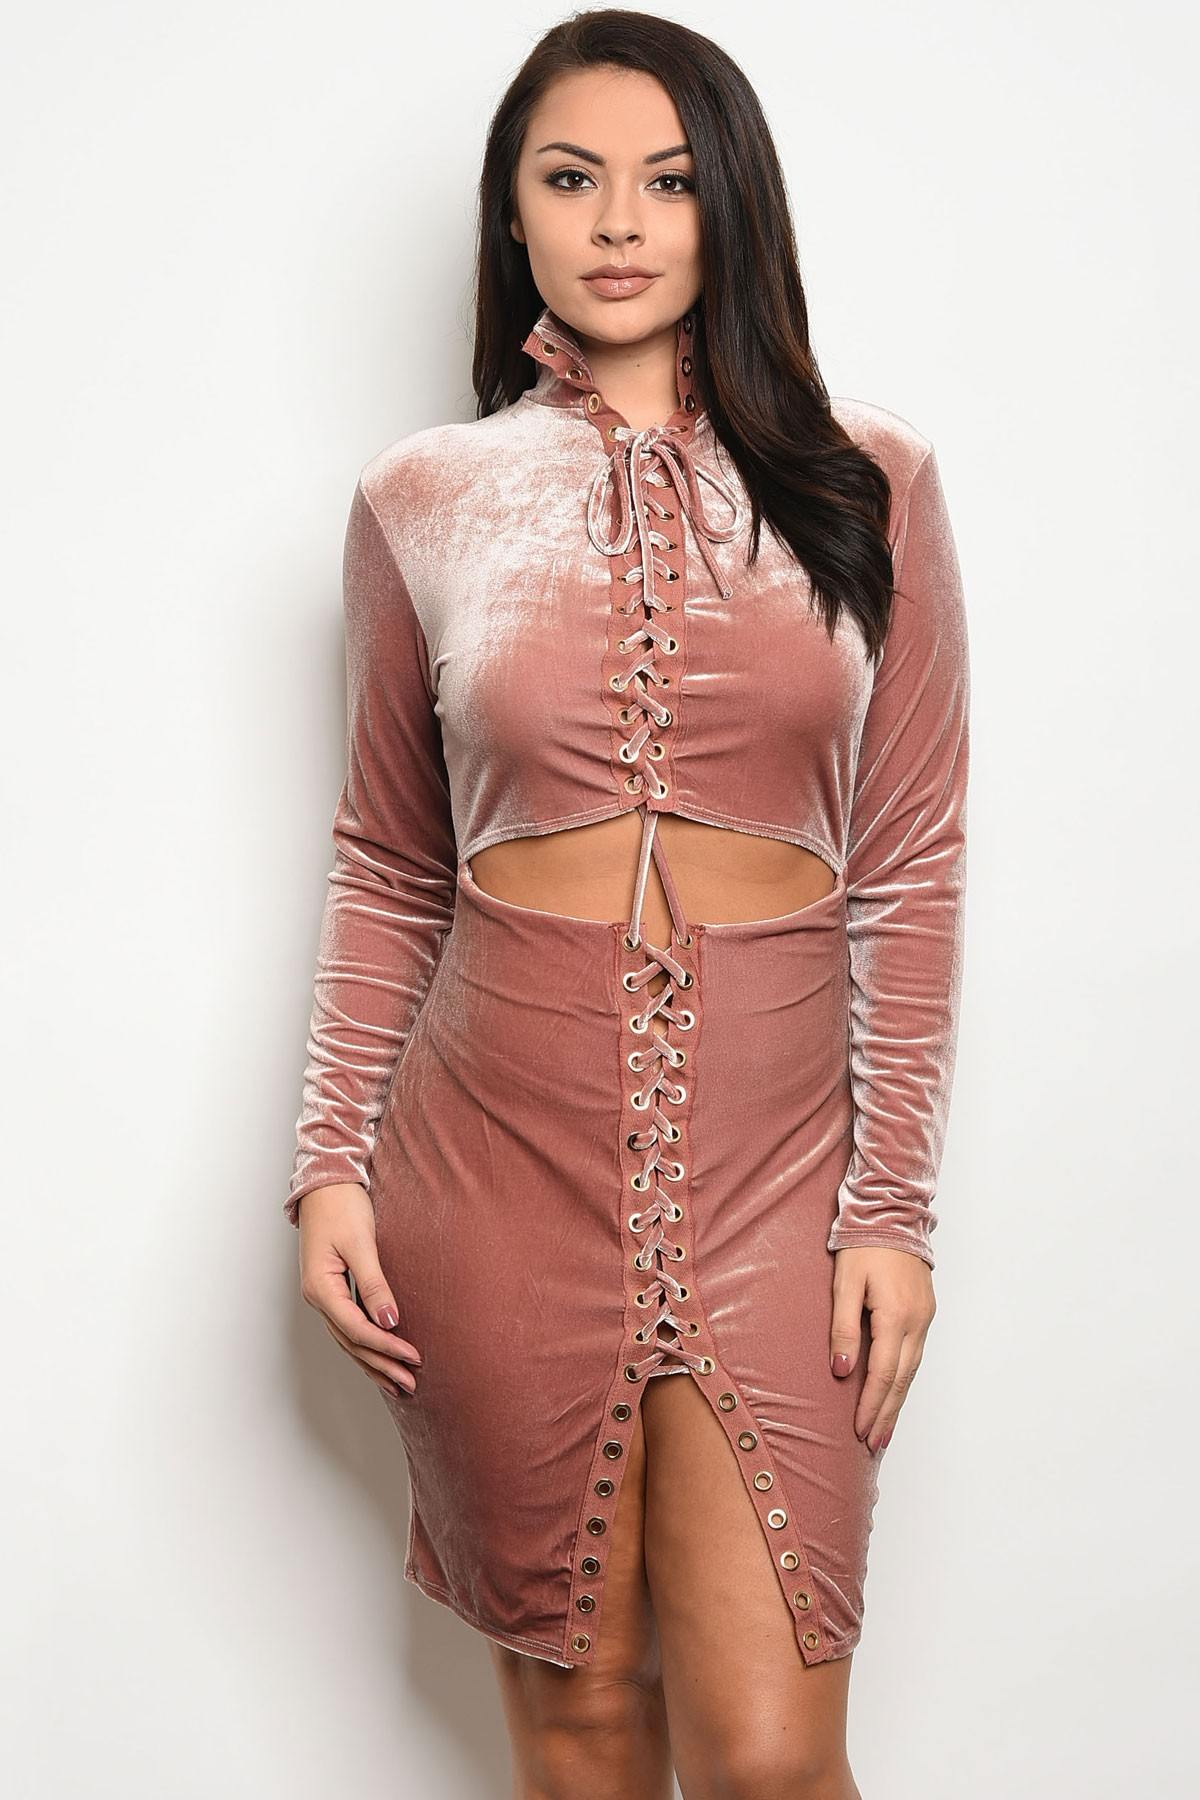 Ladies fashion long sleeve velvet bodycon dress that features lace up details and a cutout waist-1XL-MY UPSCALE STORE